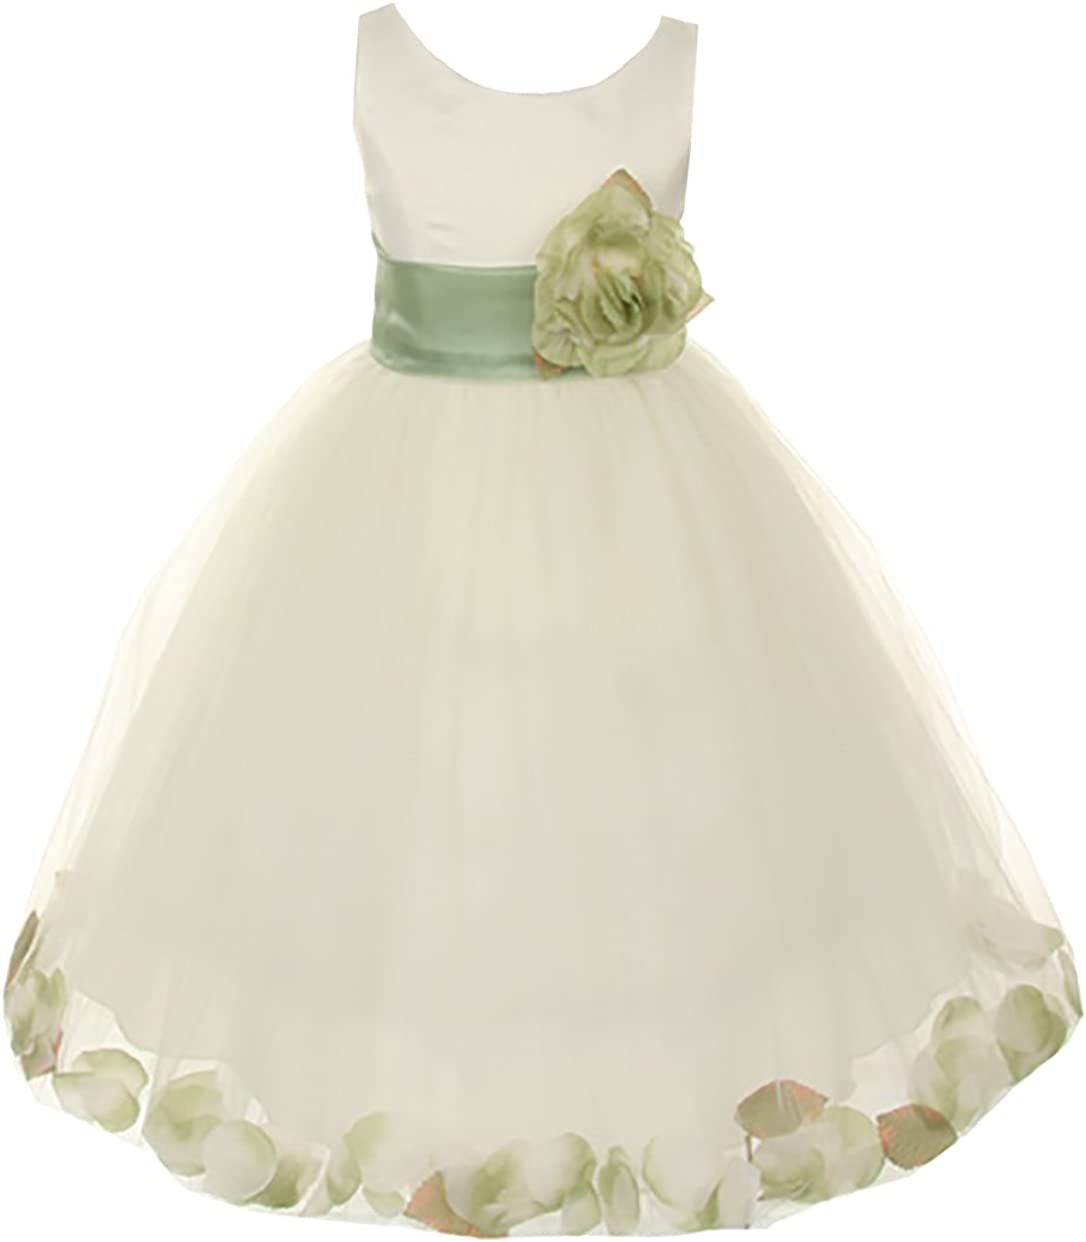 Cinderella Couture Little Girls' Ivory Tulle Petal Flower Girl Pageant Dress